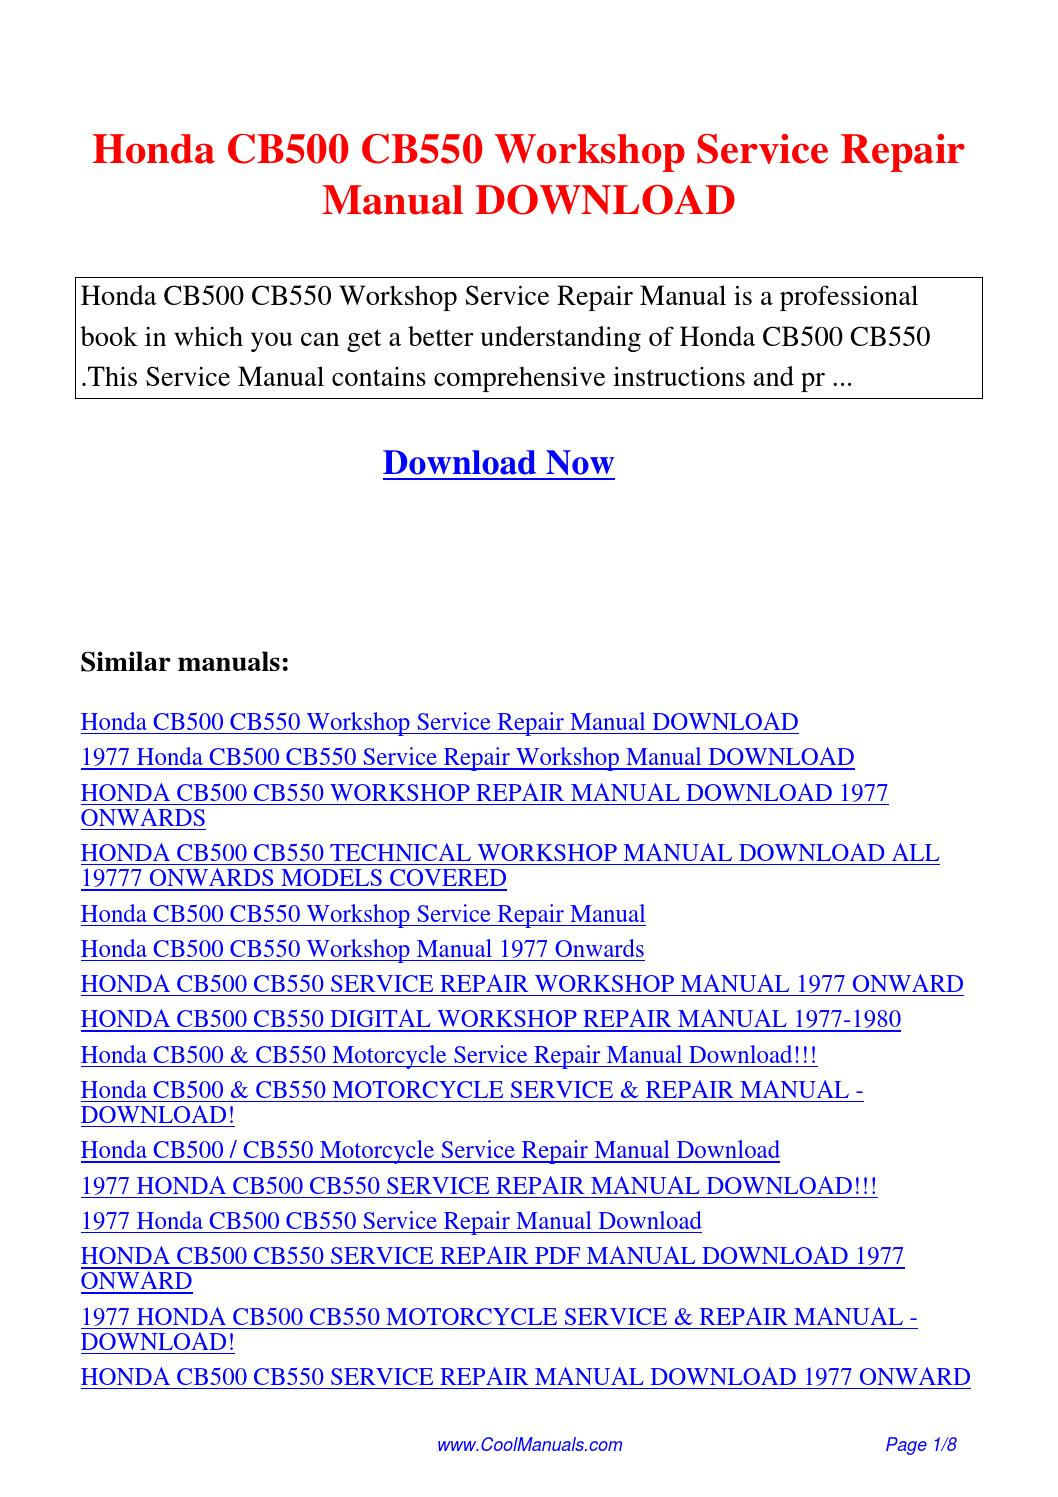 Honda CB500 CB550 Workshop Service Repair Manual.pdf by Linda Pong - issuu